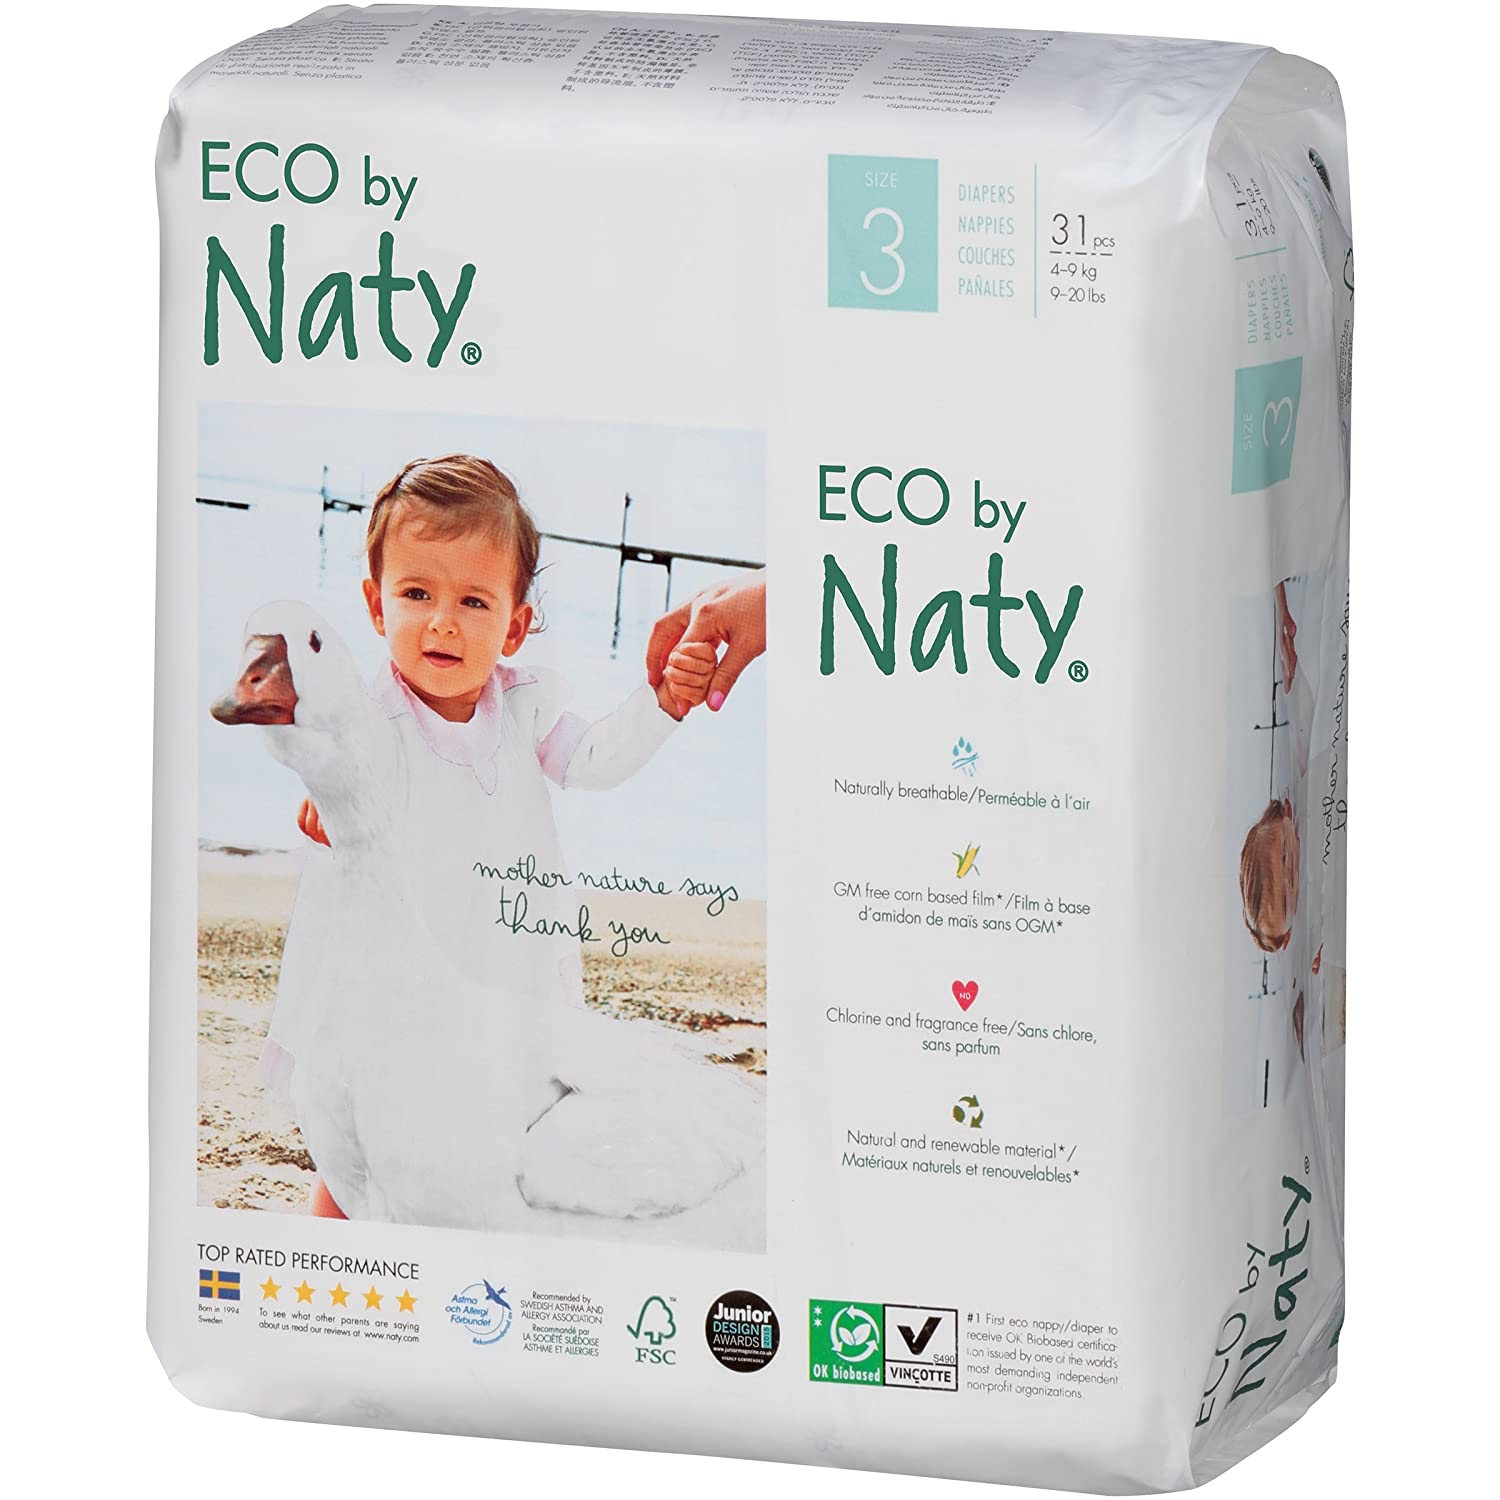 Amazon.com: Branded Naty, ECO By Naty Diapers, Size 3, 31 Diapers , Weight 28lbs - Branded Diapers with fast delivery (Soft and Comfortable for Babies): ...